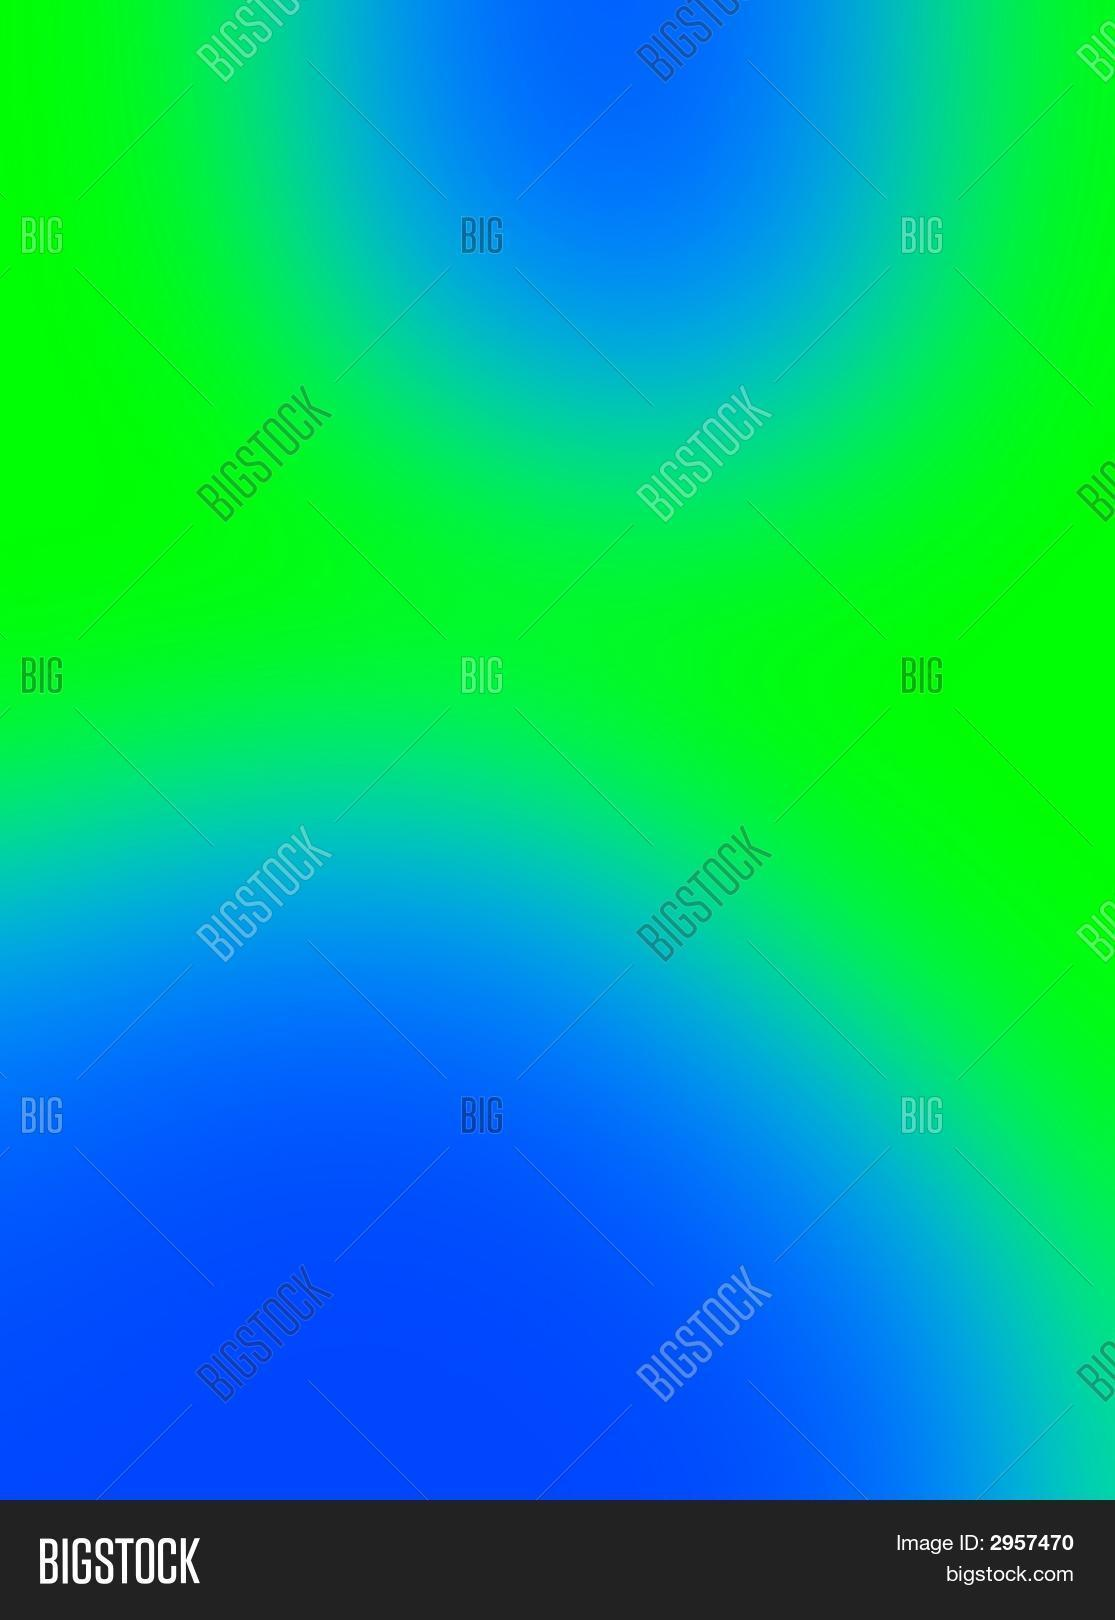 Blue Lava Lamp Wax Blobs On Green Image Amp Photo Bigstock